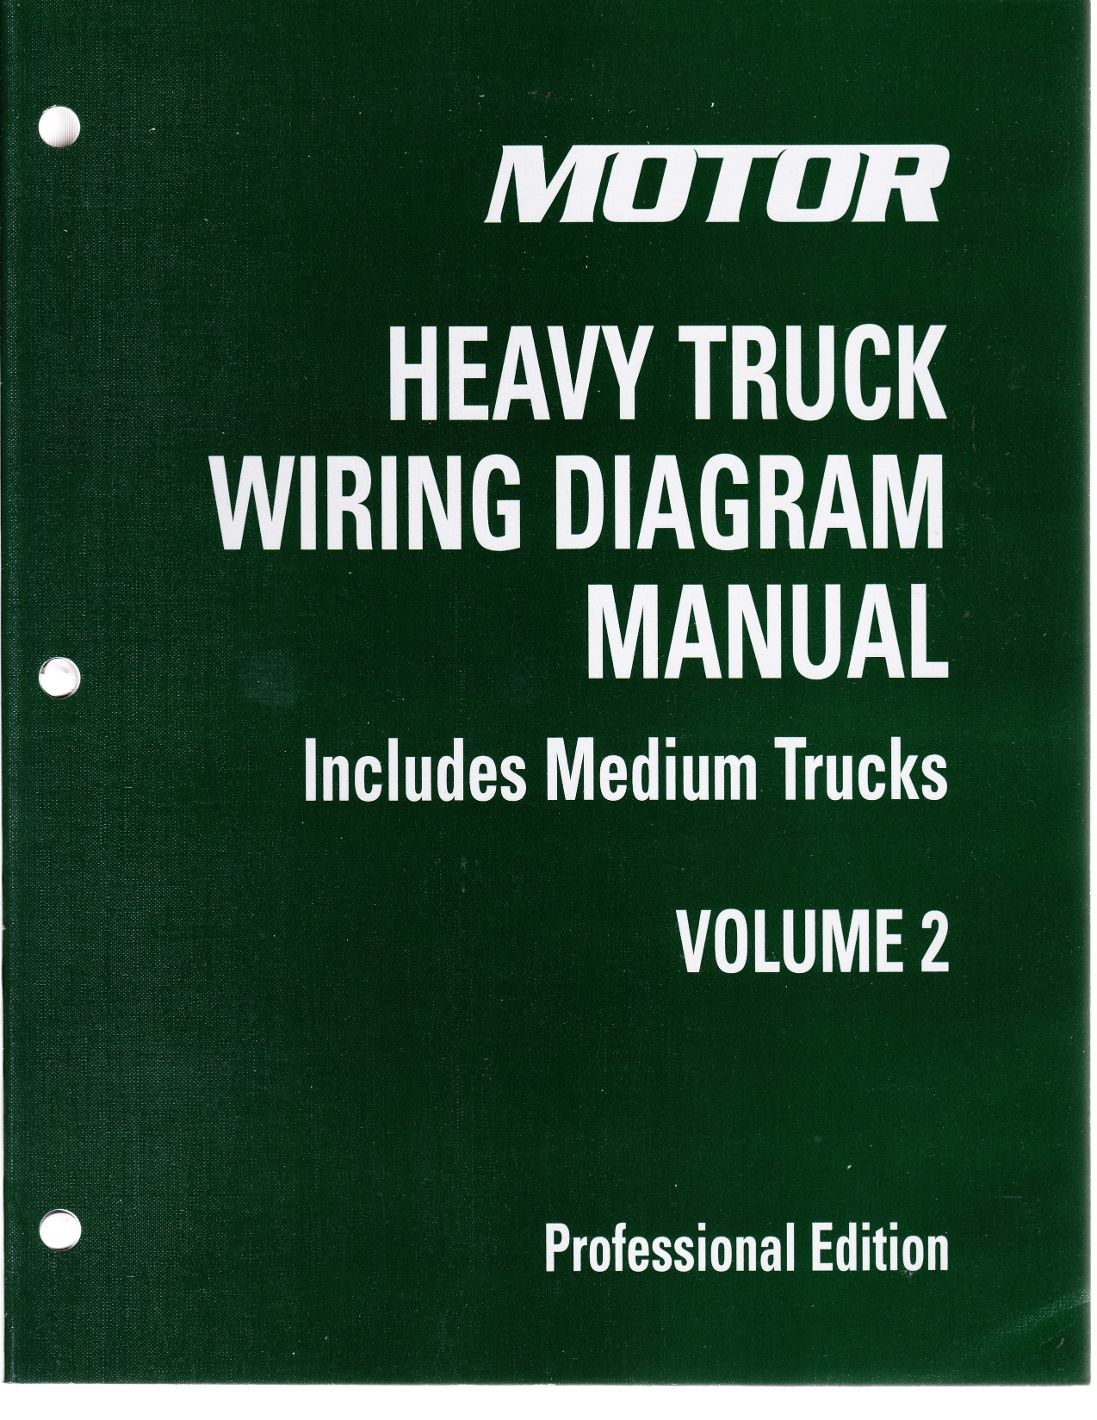 kenworth heavy truck wiring diagram lz 1891  kenworth heavy truck wiring diagram view diagram kenworth  kenworth heavy truck wiring diagram